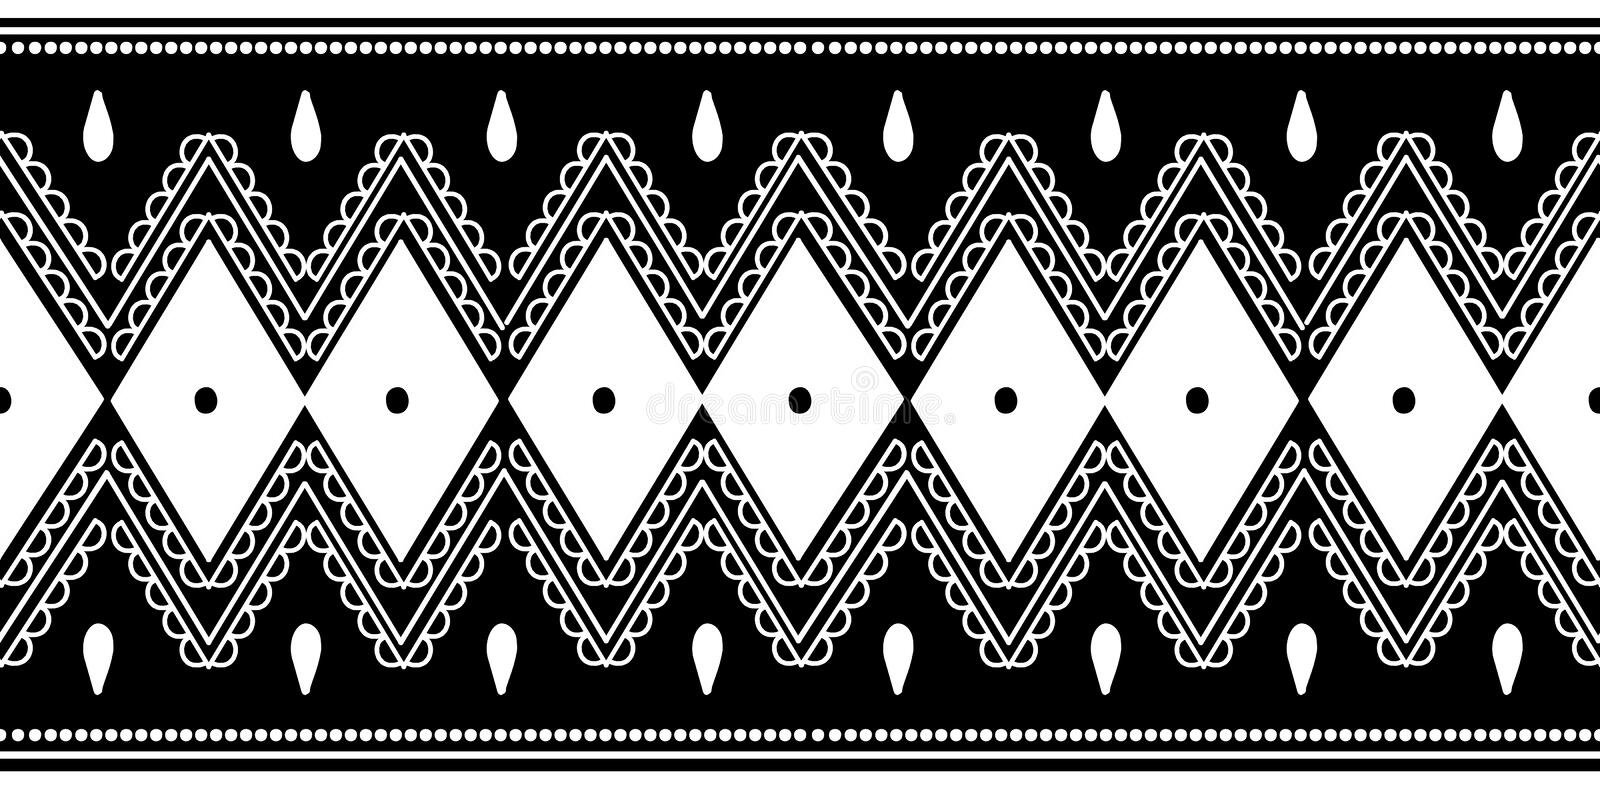 Black and white african tribal pattern background. Abstract traditional ethnic hand drawn motif monochrome colors vector illustration